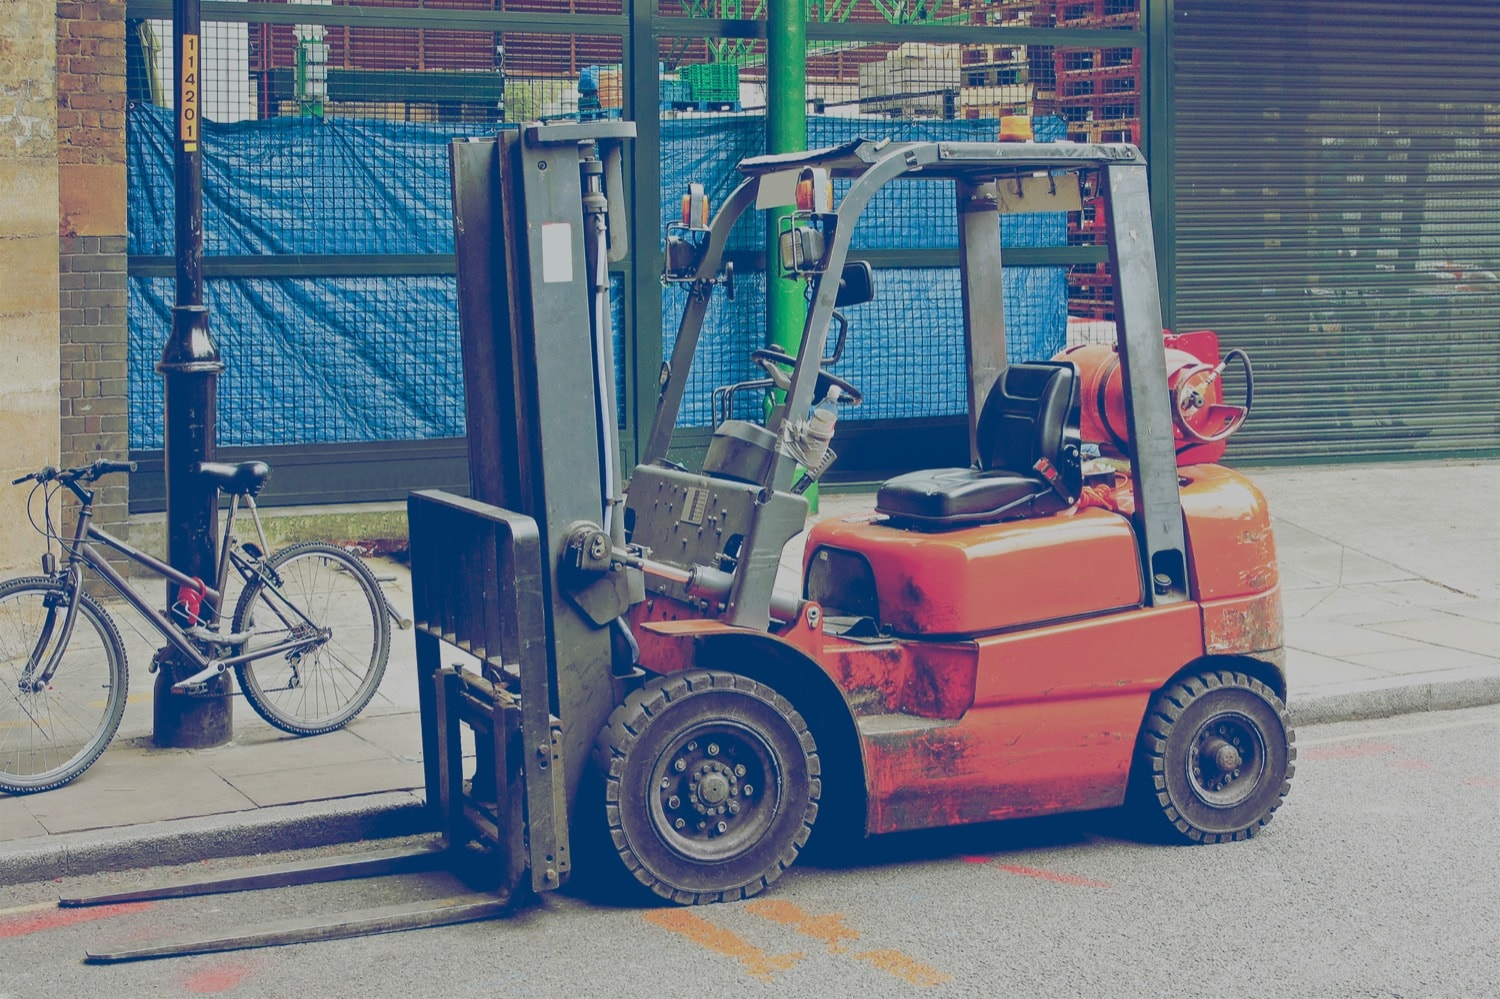 Orange forklift with propane cylinder parked on the street next to a bike.